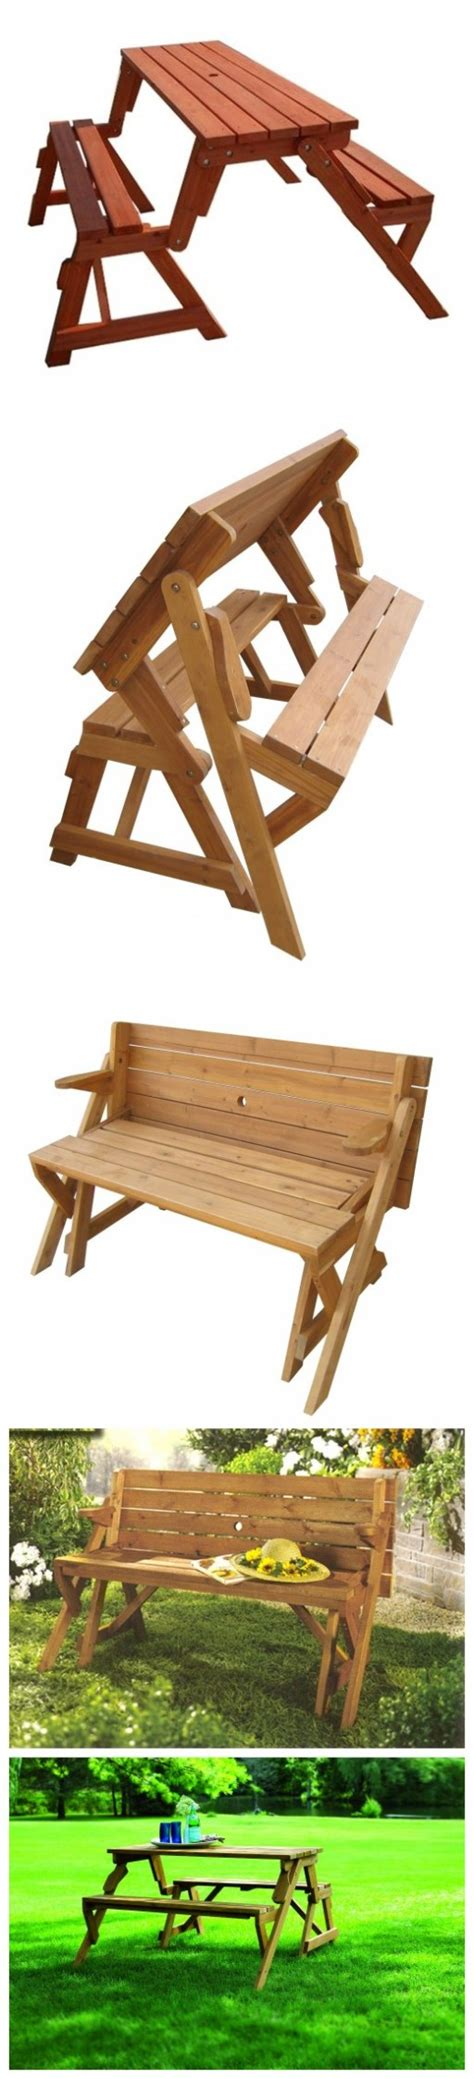 Folding Picnic Table Bench Folding Picnic Table Bench Diy Woodworking Projects